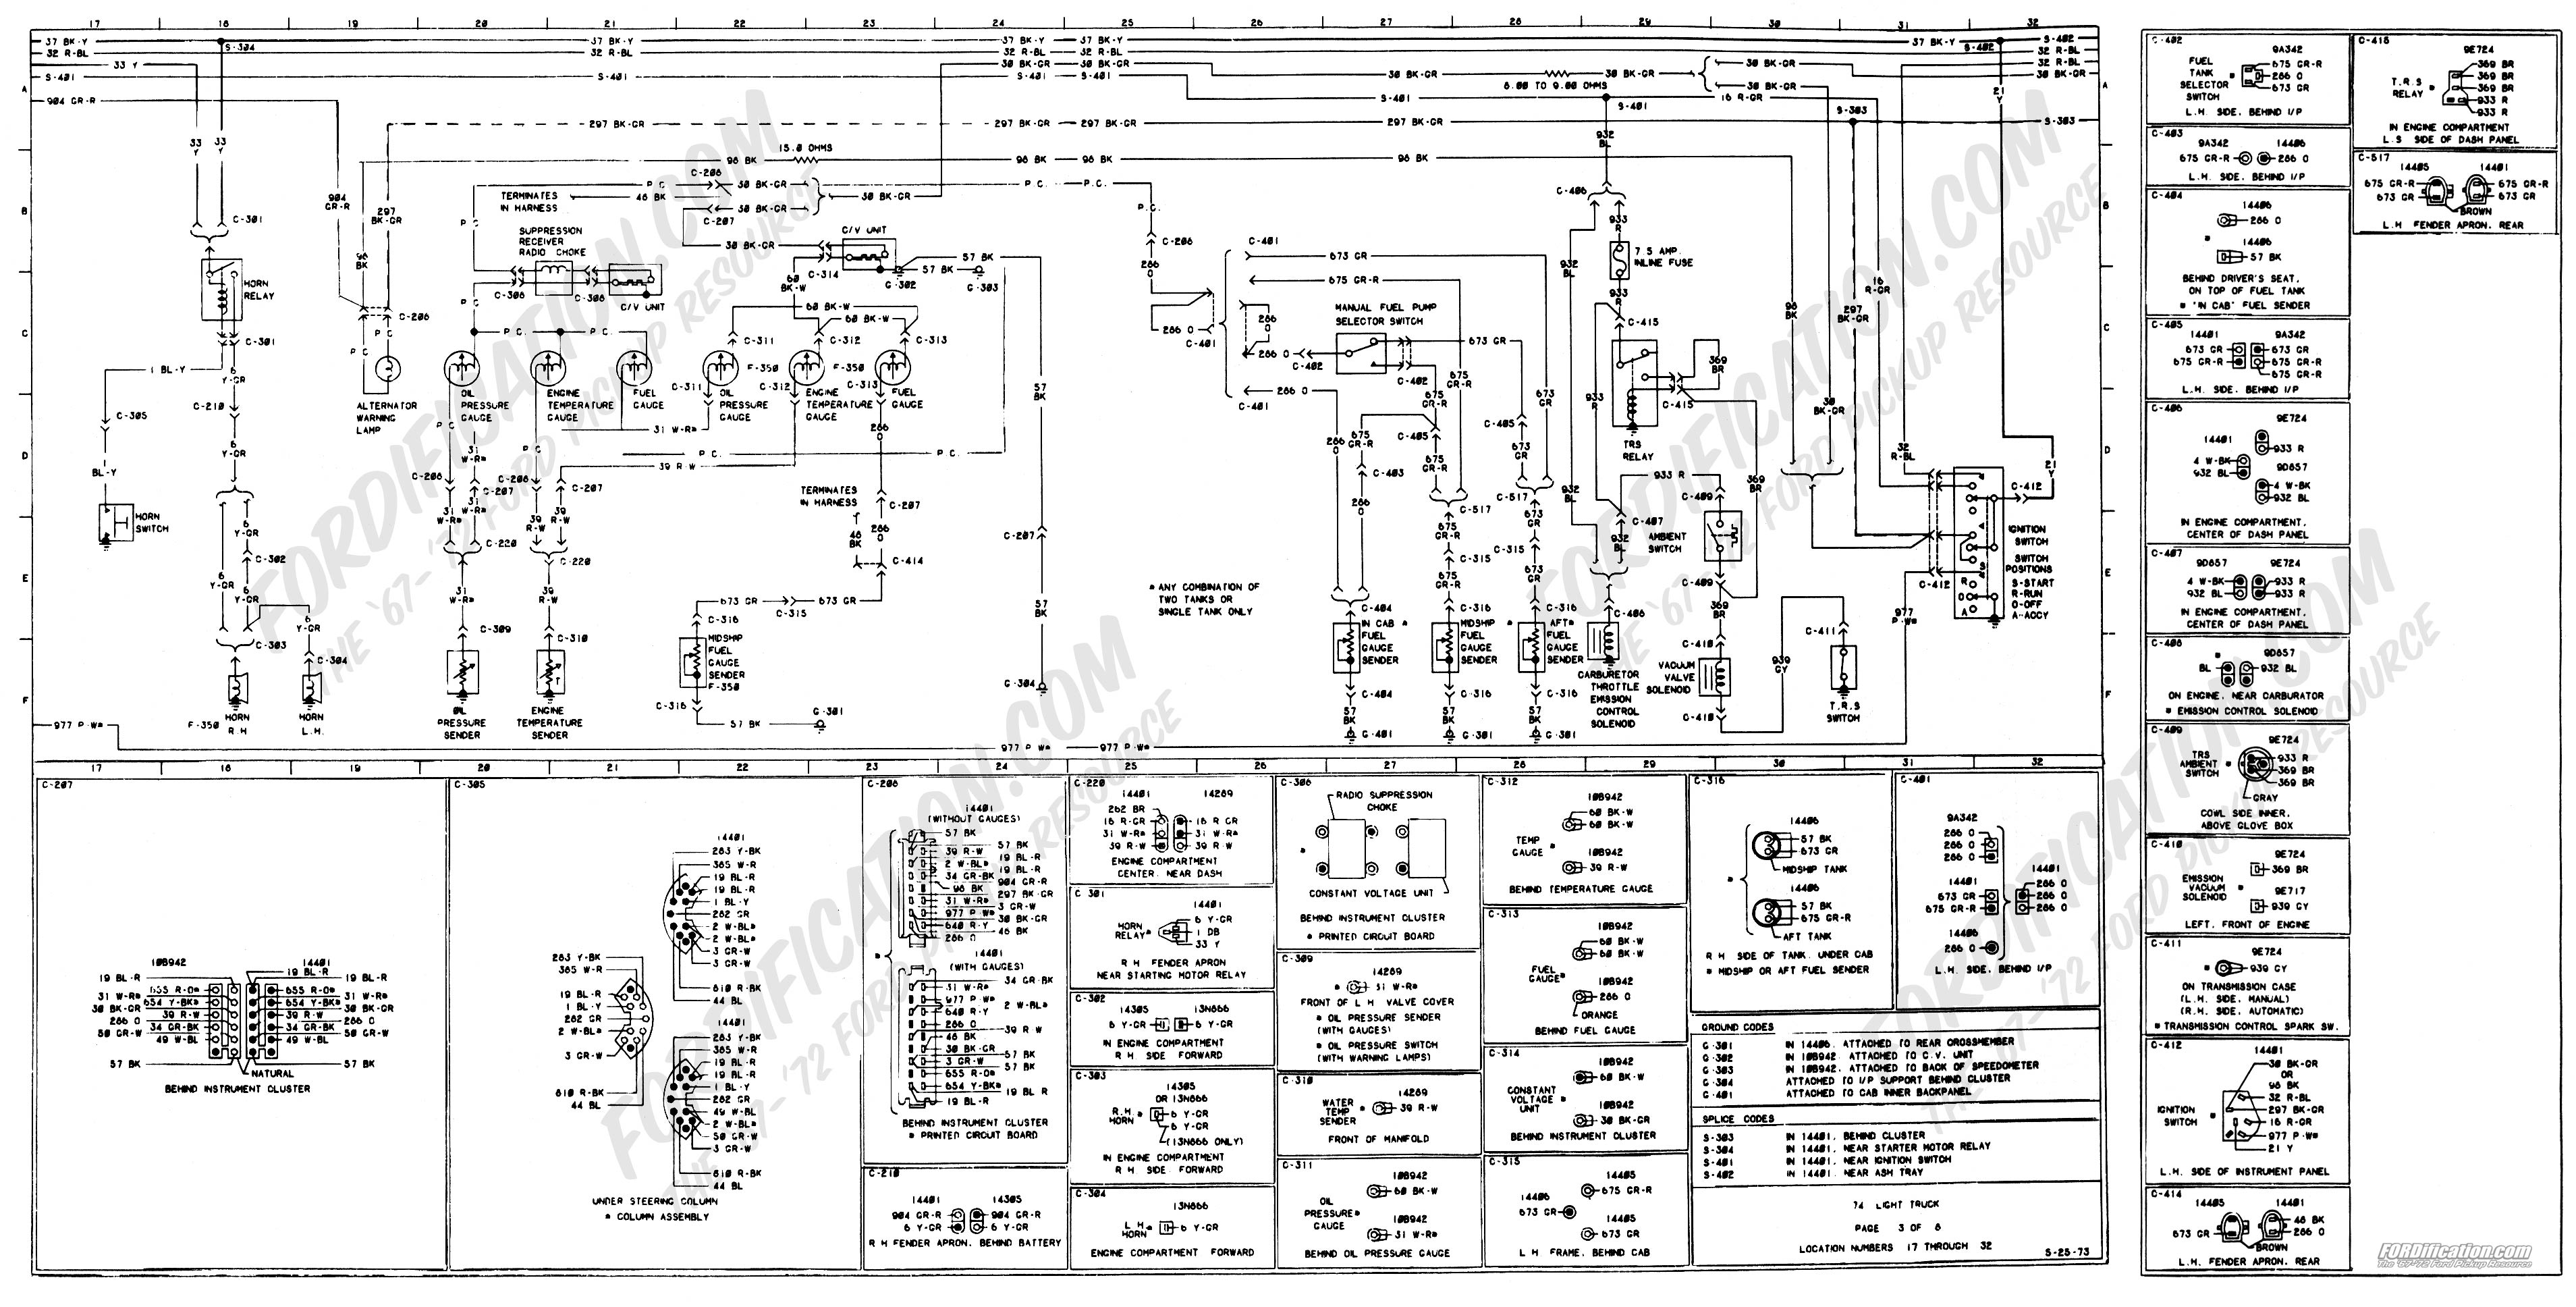 wiring_74master_3of8 1973 1979 ford truck wiring diagrams & schematics fordification net 1978 ford f250 wiring harness at bakdesigns.co